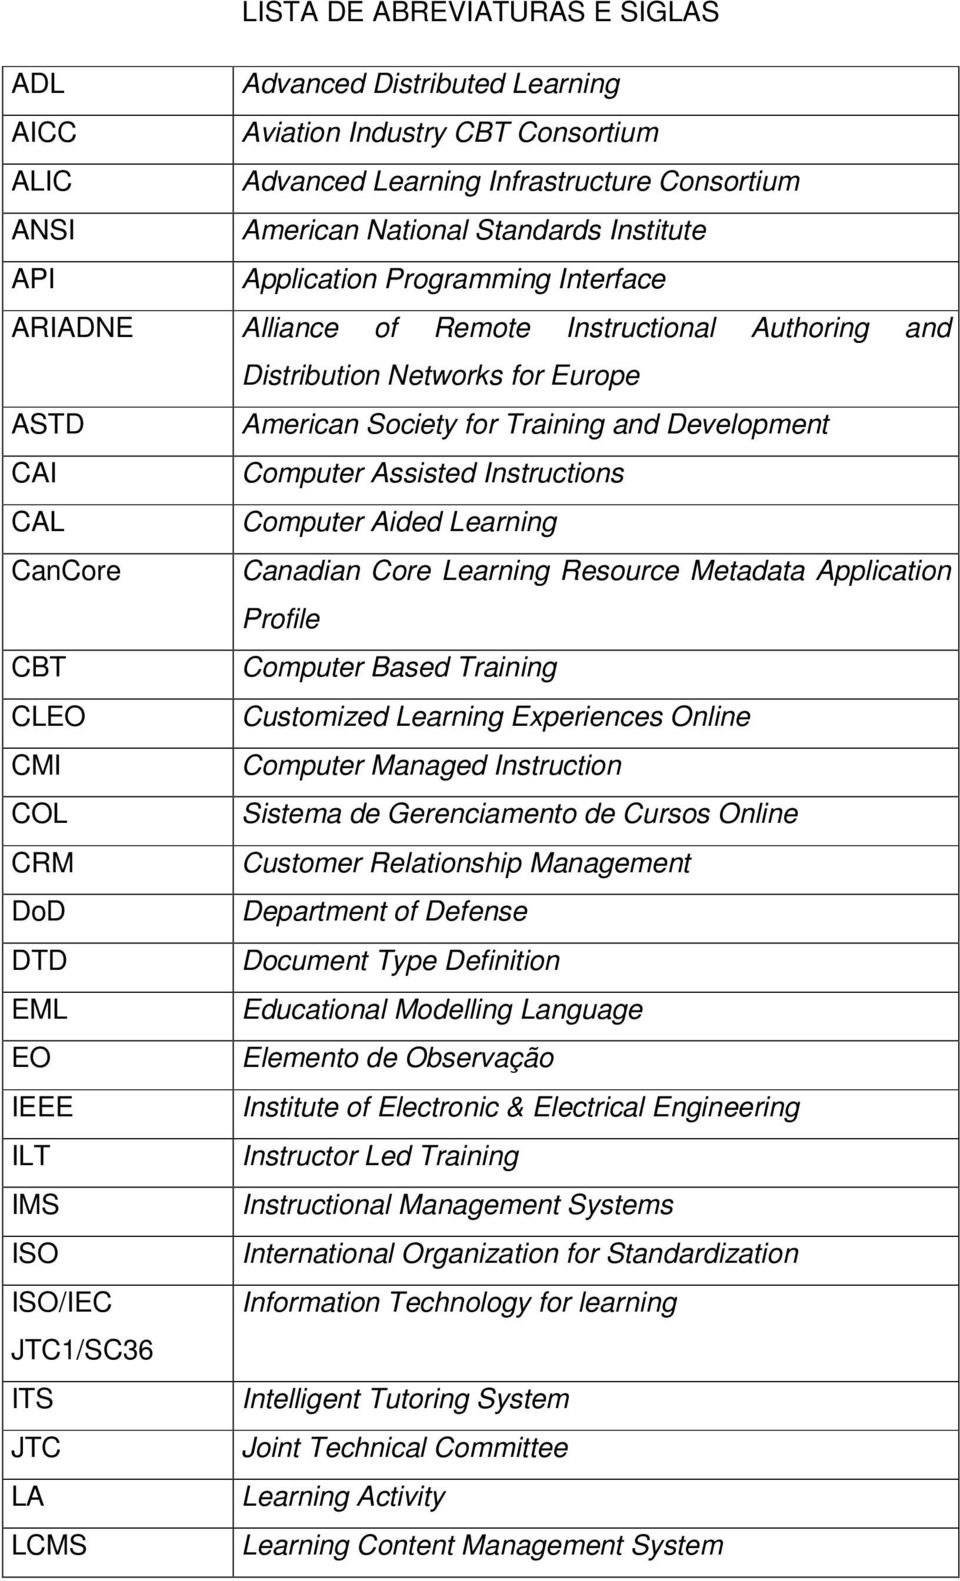 Instructions CAL Computer Aided Learning CanCore Canadian Core Learning Resource Metadata Application Profile CBT Computer Based Training CLEO Customized Learning Experiences Online CMI Computer